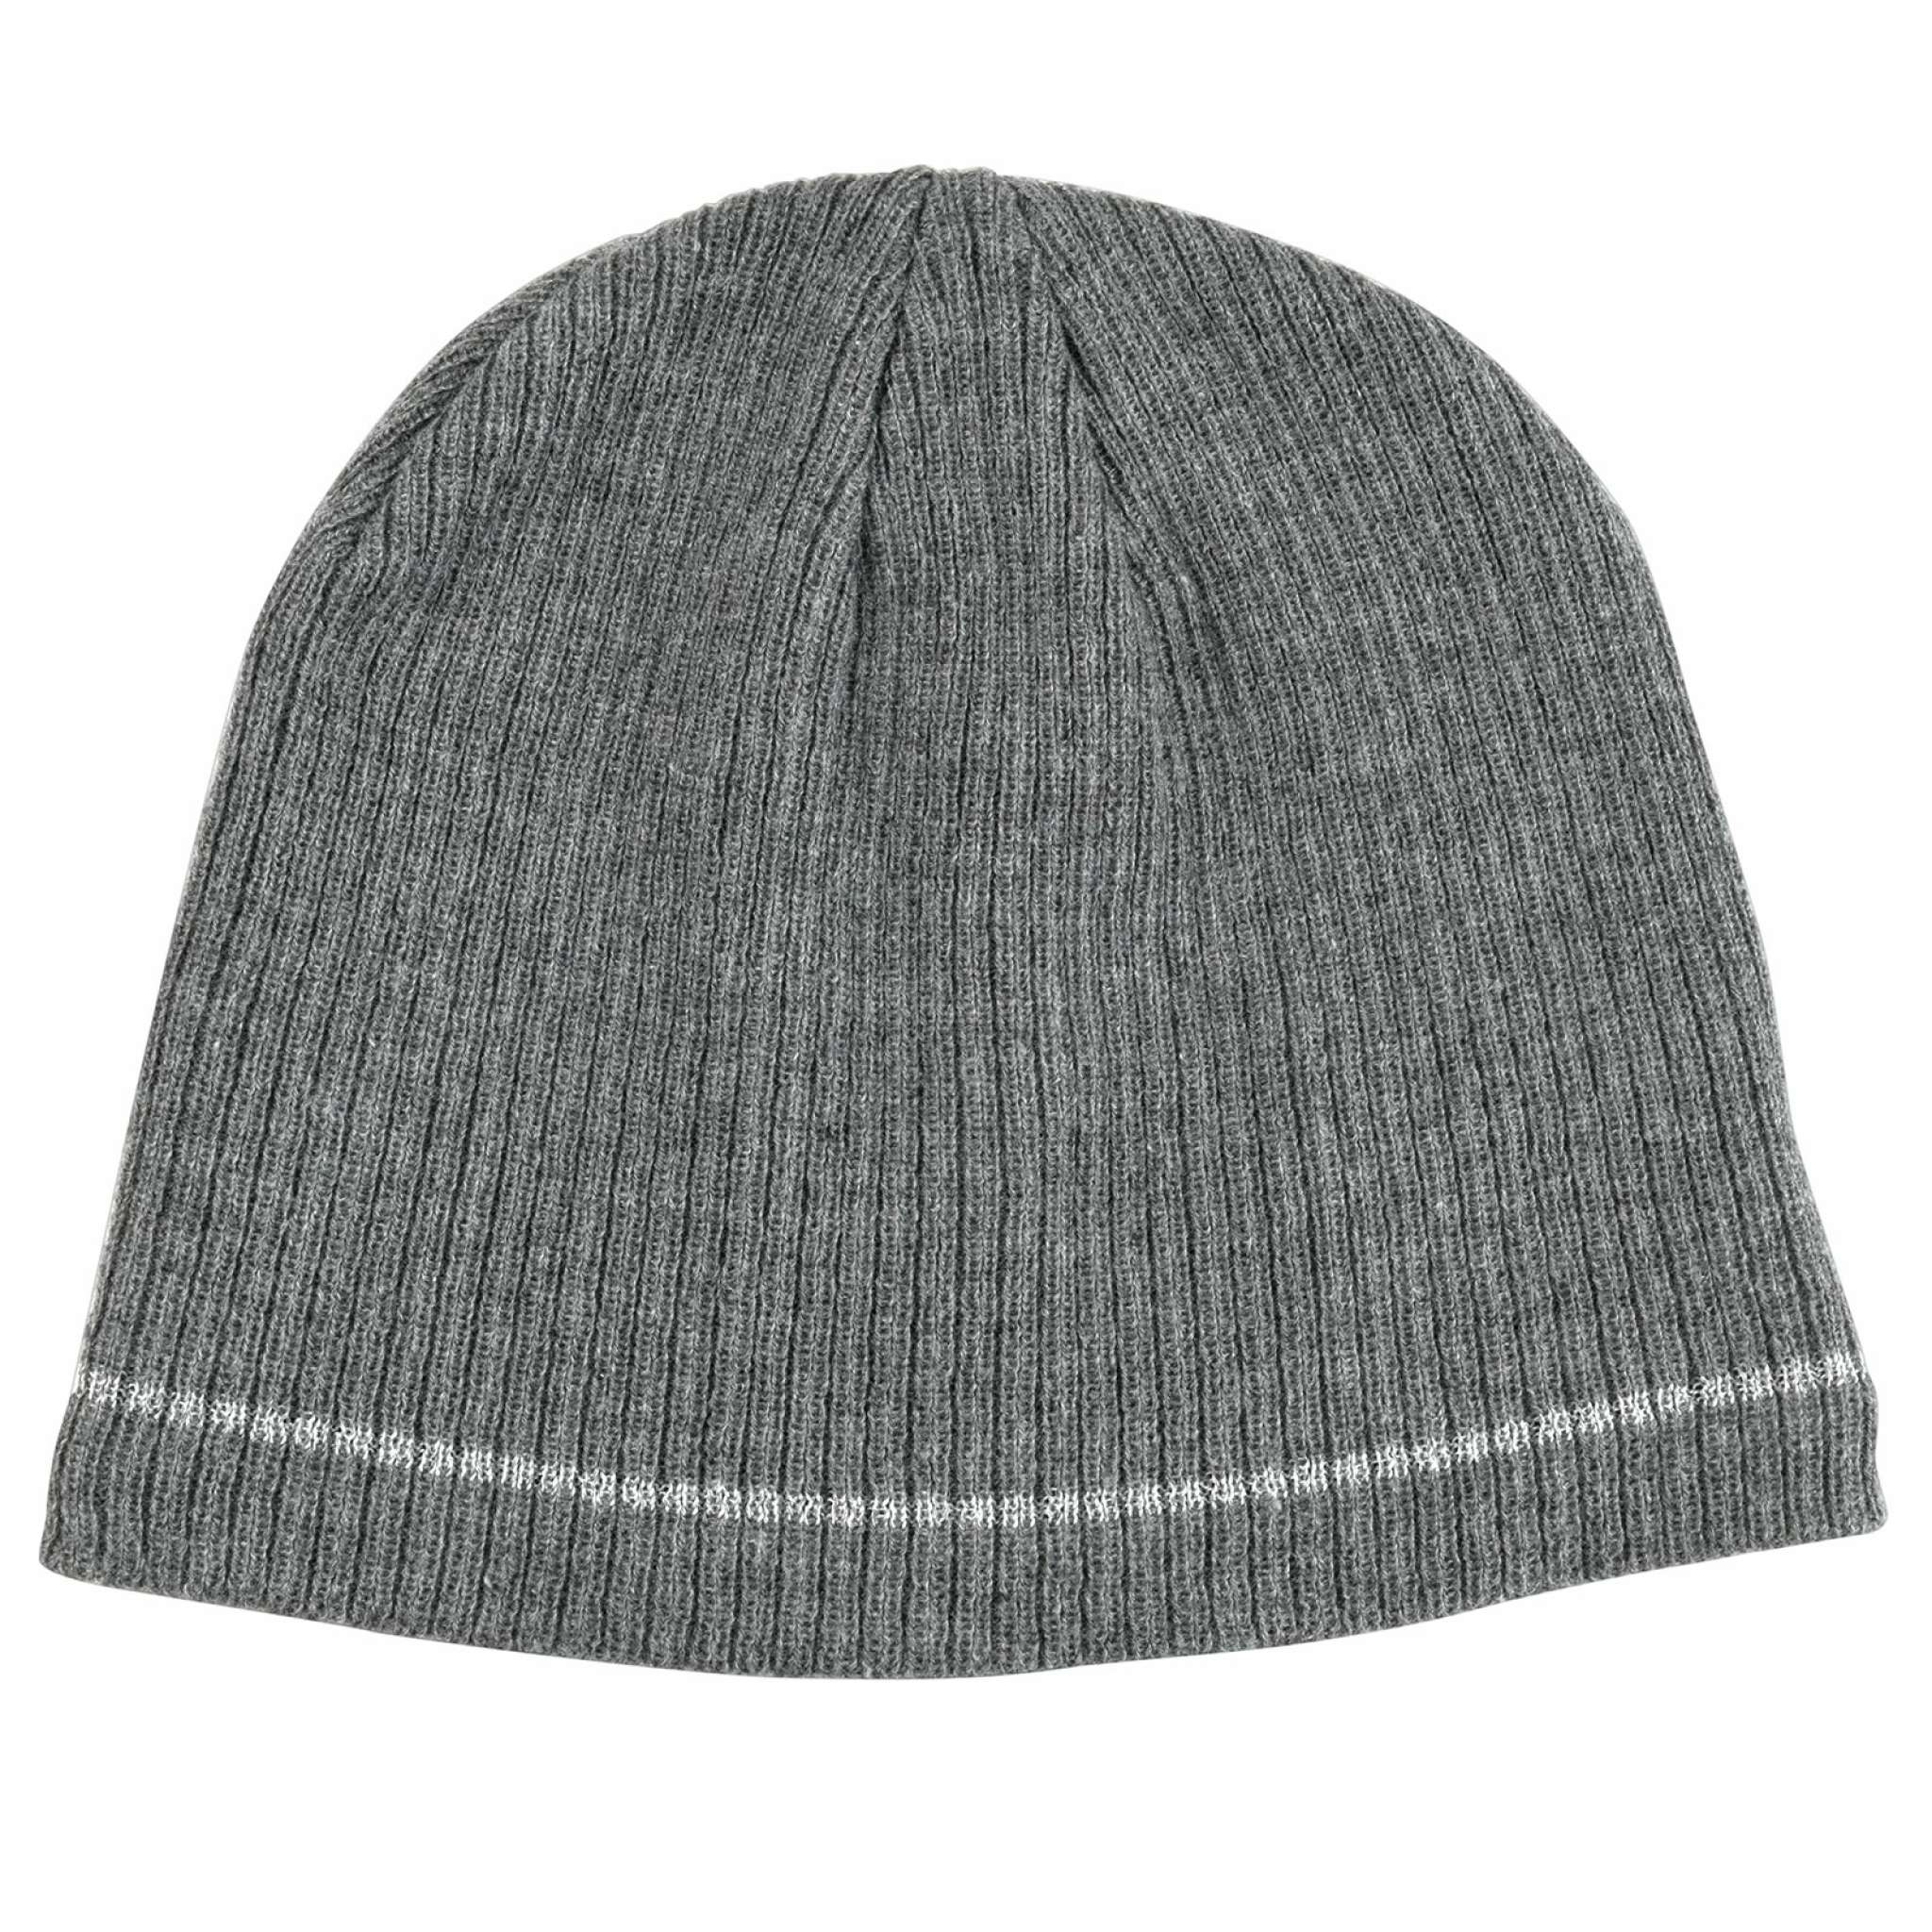 Double layer reflective hat